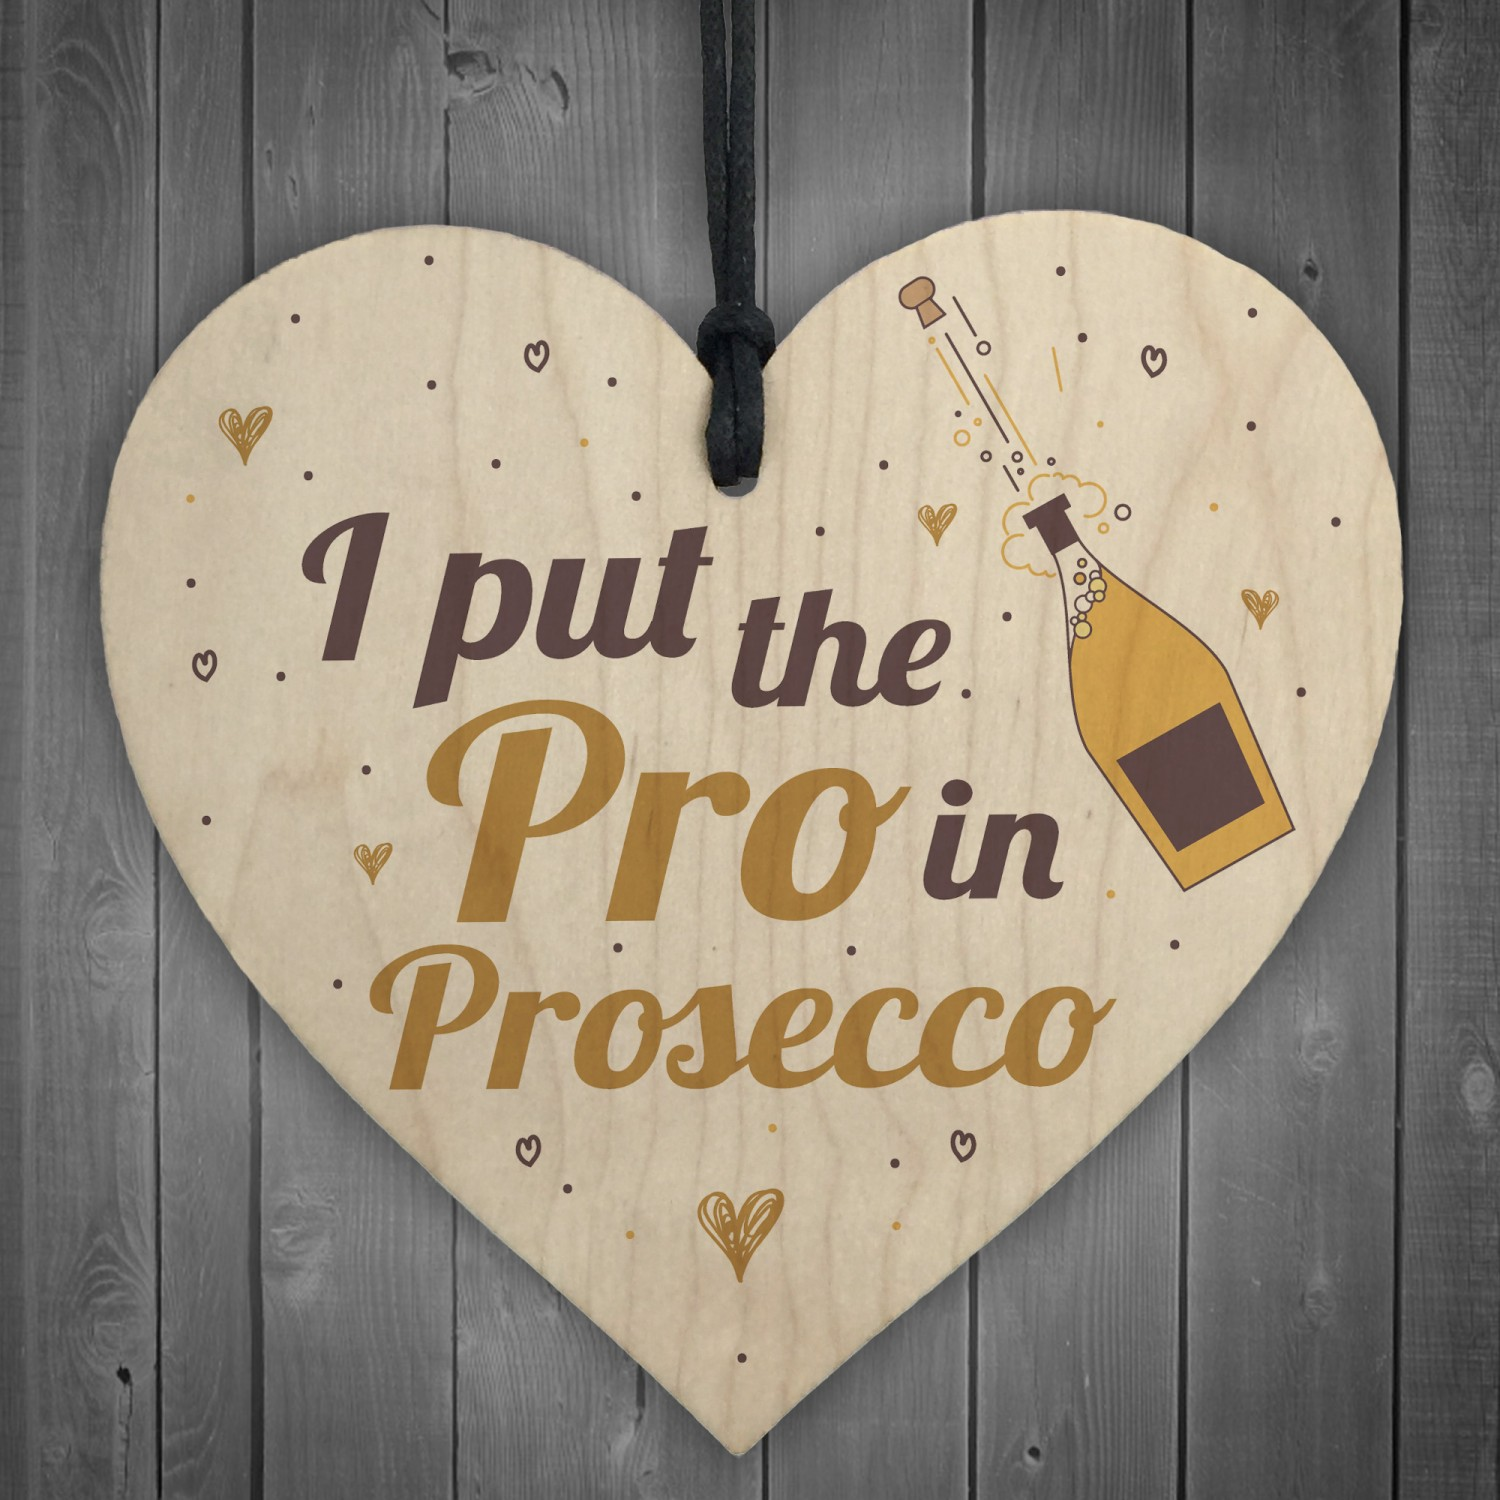 Pro In Prosecco Friendship Wooden Heart Birthday Gifts Alcohol